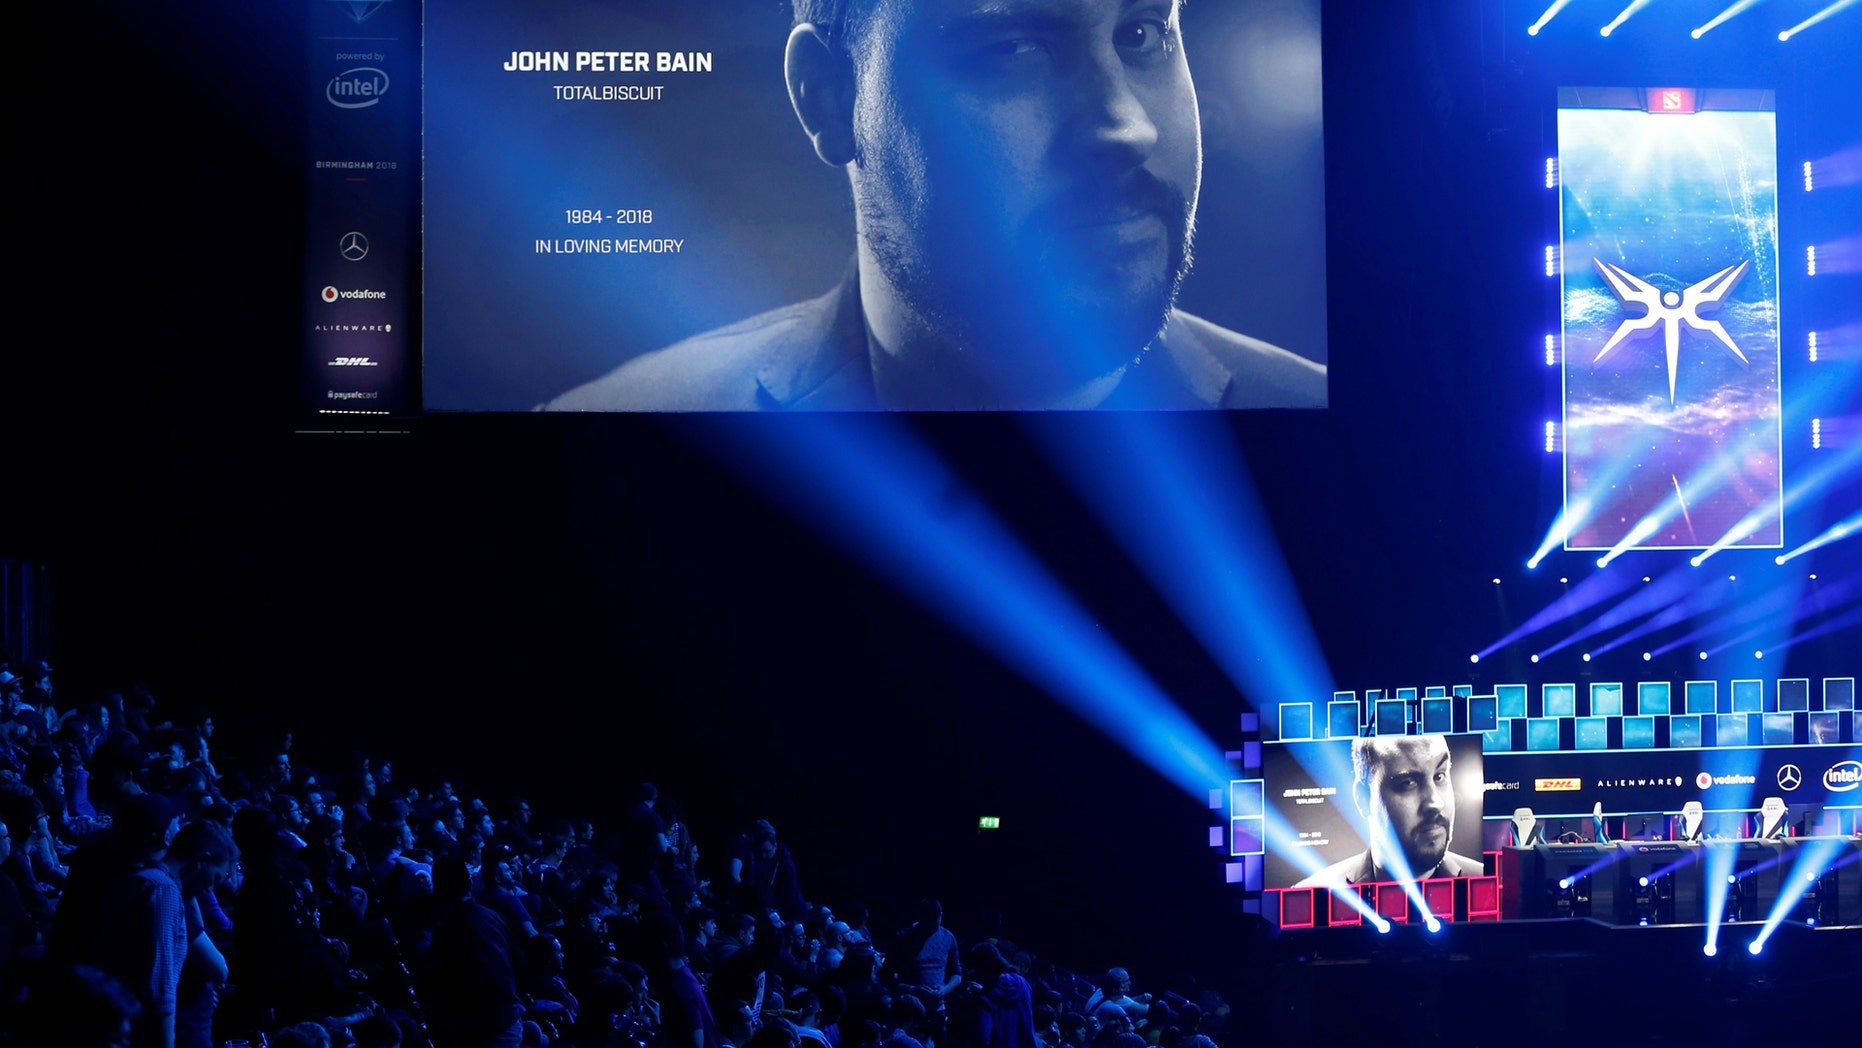 Esports - ESL One - Dota 2 Major - Arena Birmingham, Birmingham, Britain - May 26, 2018  Fans observe a minute's silence in memory of YouTube star John Peter Bain, also known as TotalBiscuit  Action Images via Reuters/Ed Sykes - RC1B610D2F90